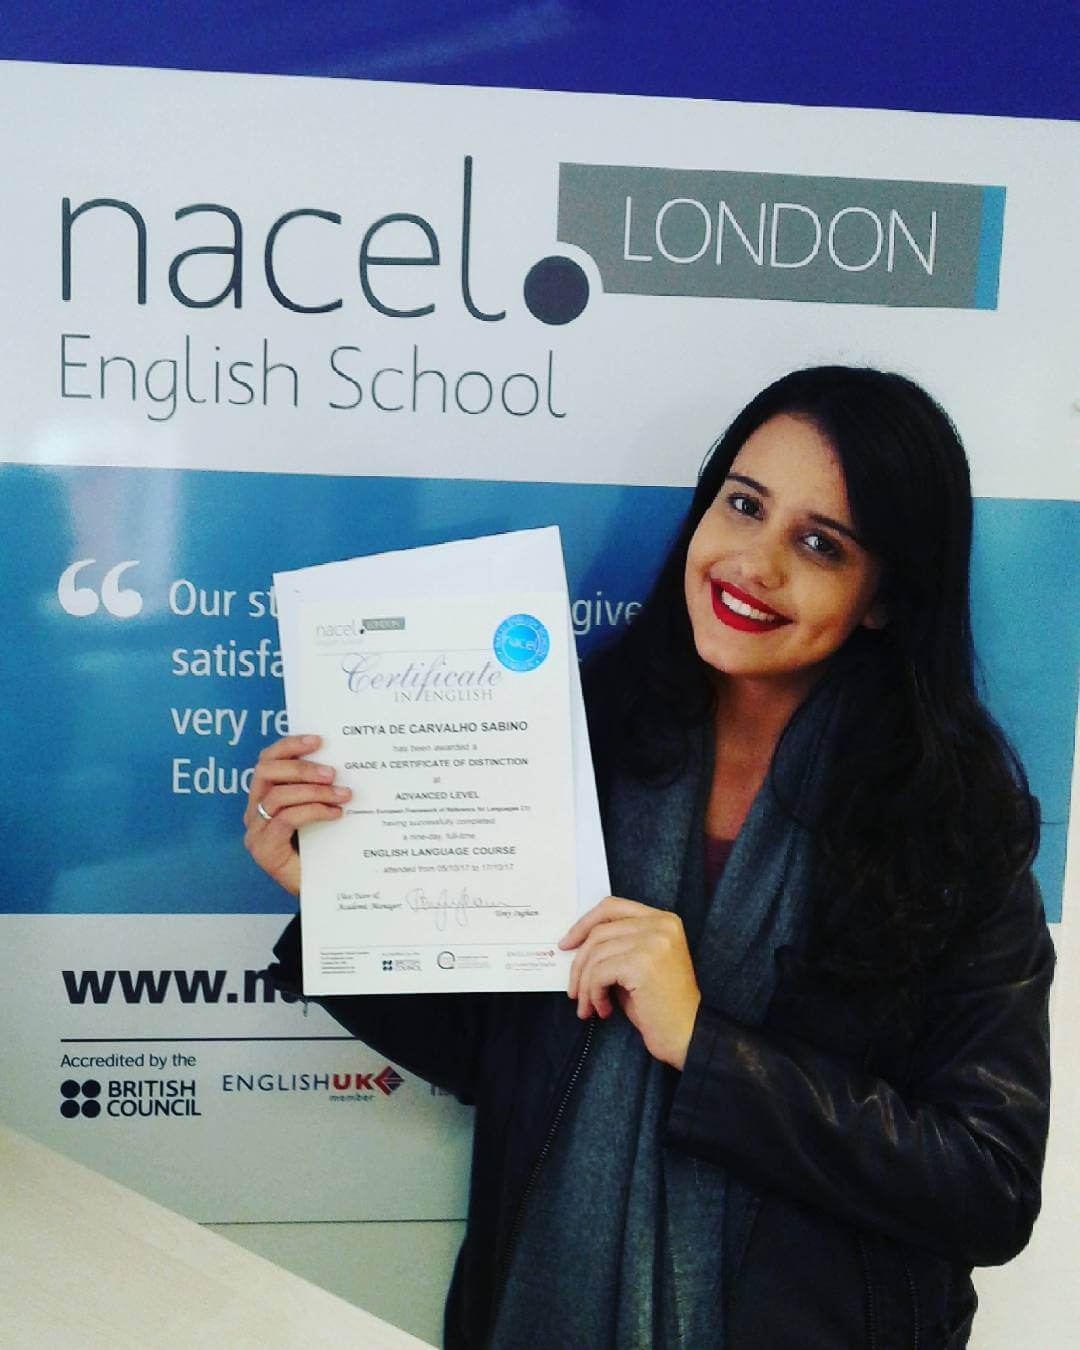 nacel londres etudiante student english school